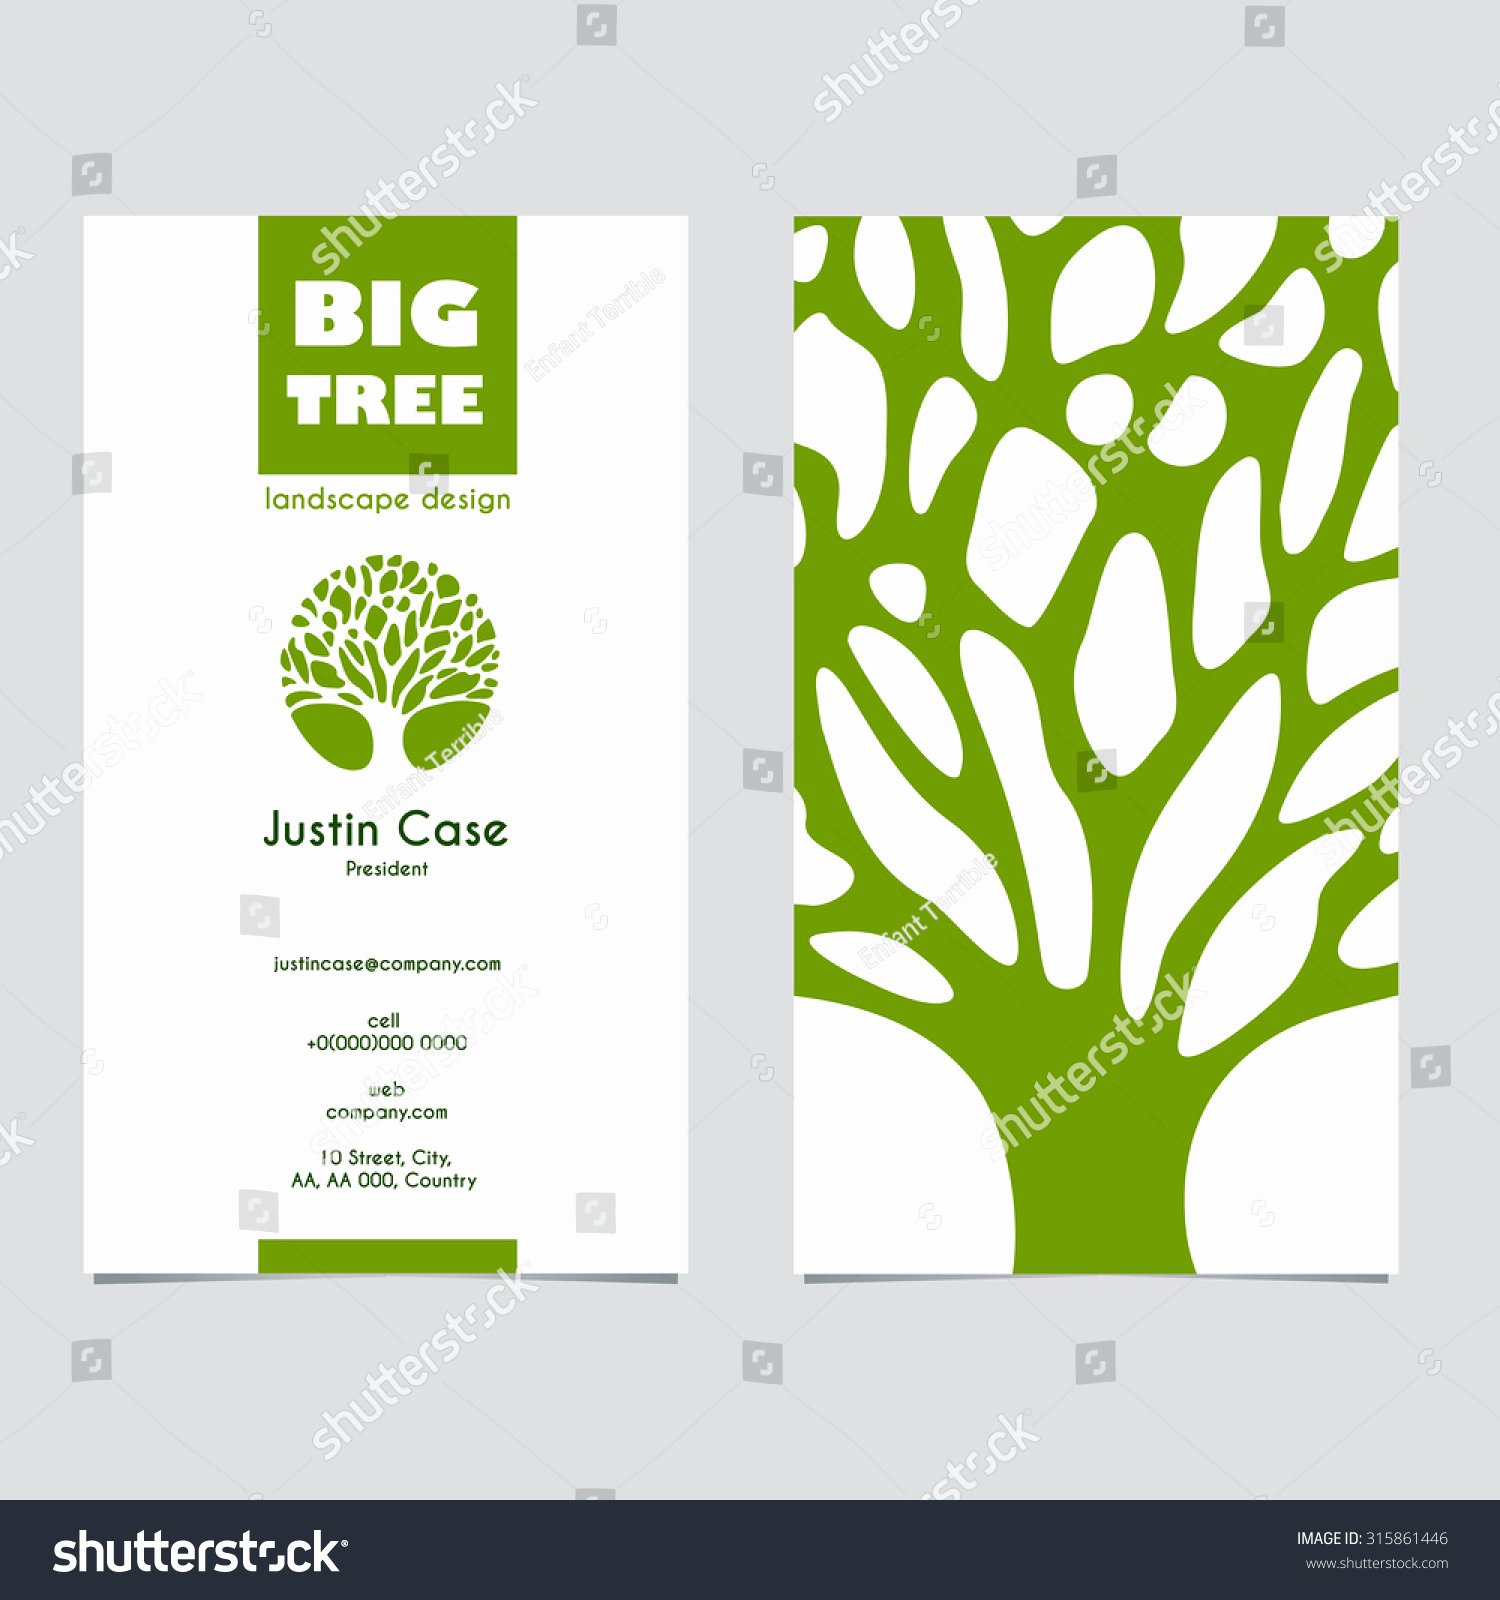 Product Line Card Template Best Of Abstract Tree Sign & Business Card Vector Template Vector Icon & Corporate Identity Template